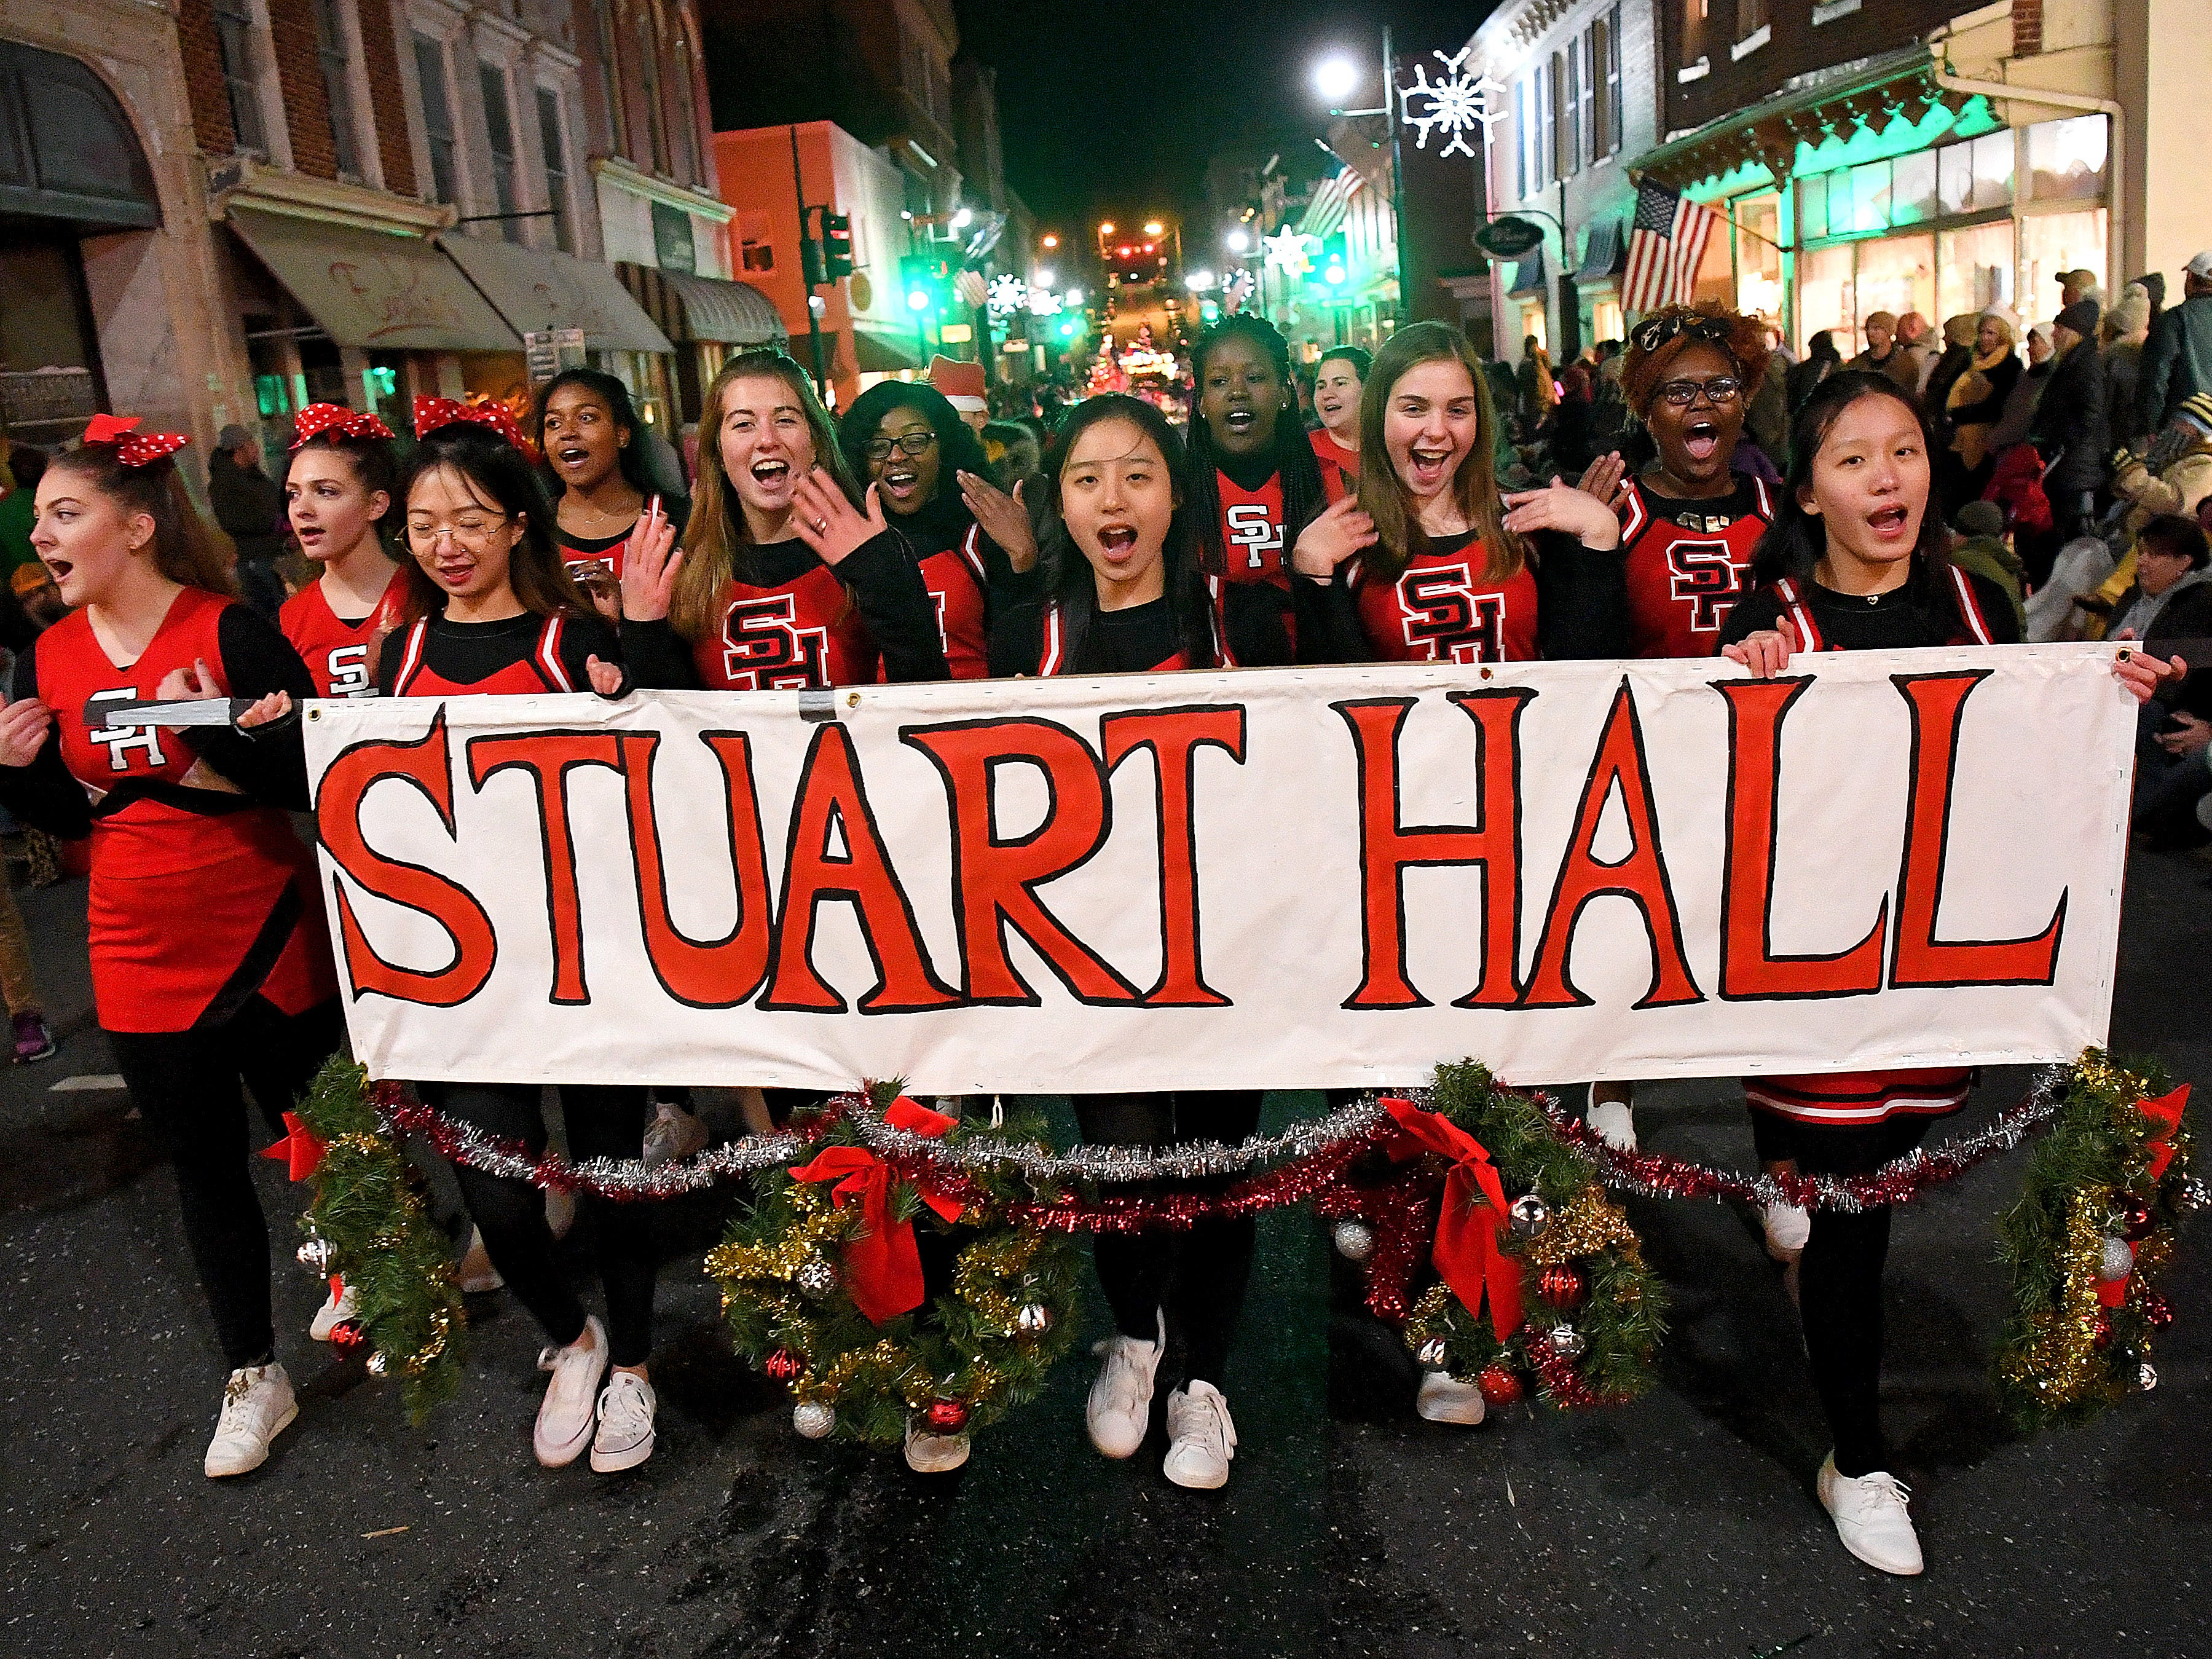 Students from Stuart Hall in the Staunton Christmas Parade on Monday, Nov. 26, 2018.